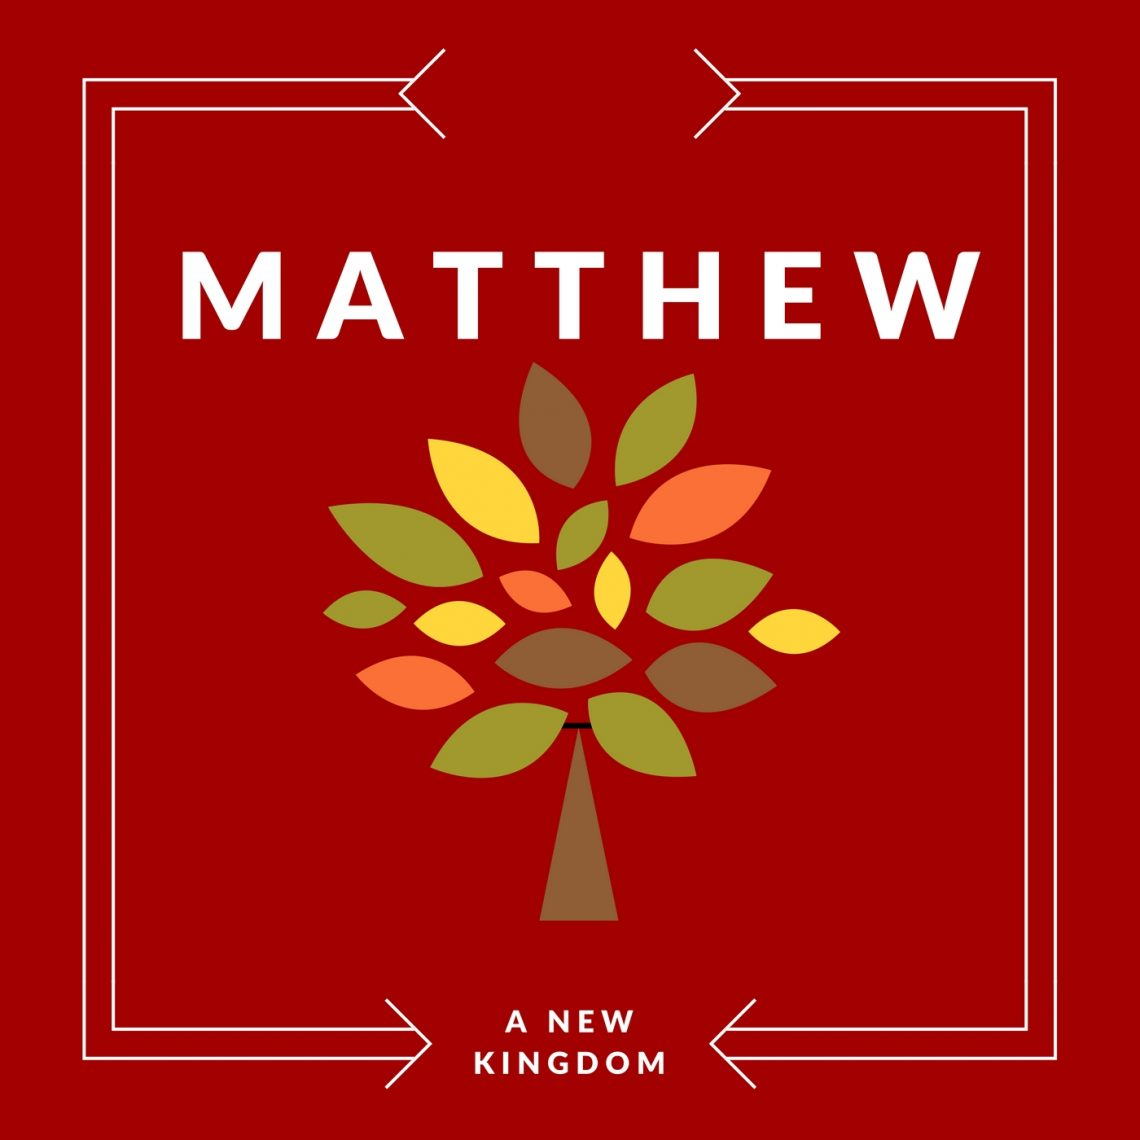 Matthew 6: The Lord's Prayer Part 2